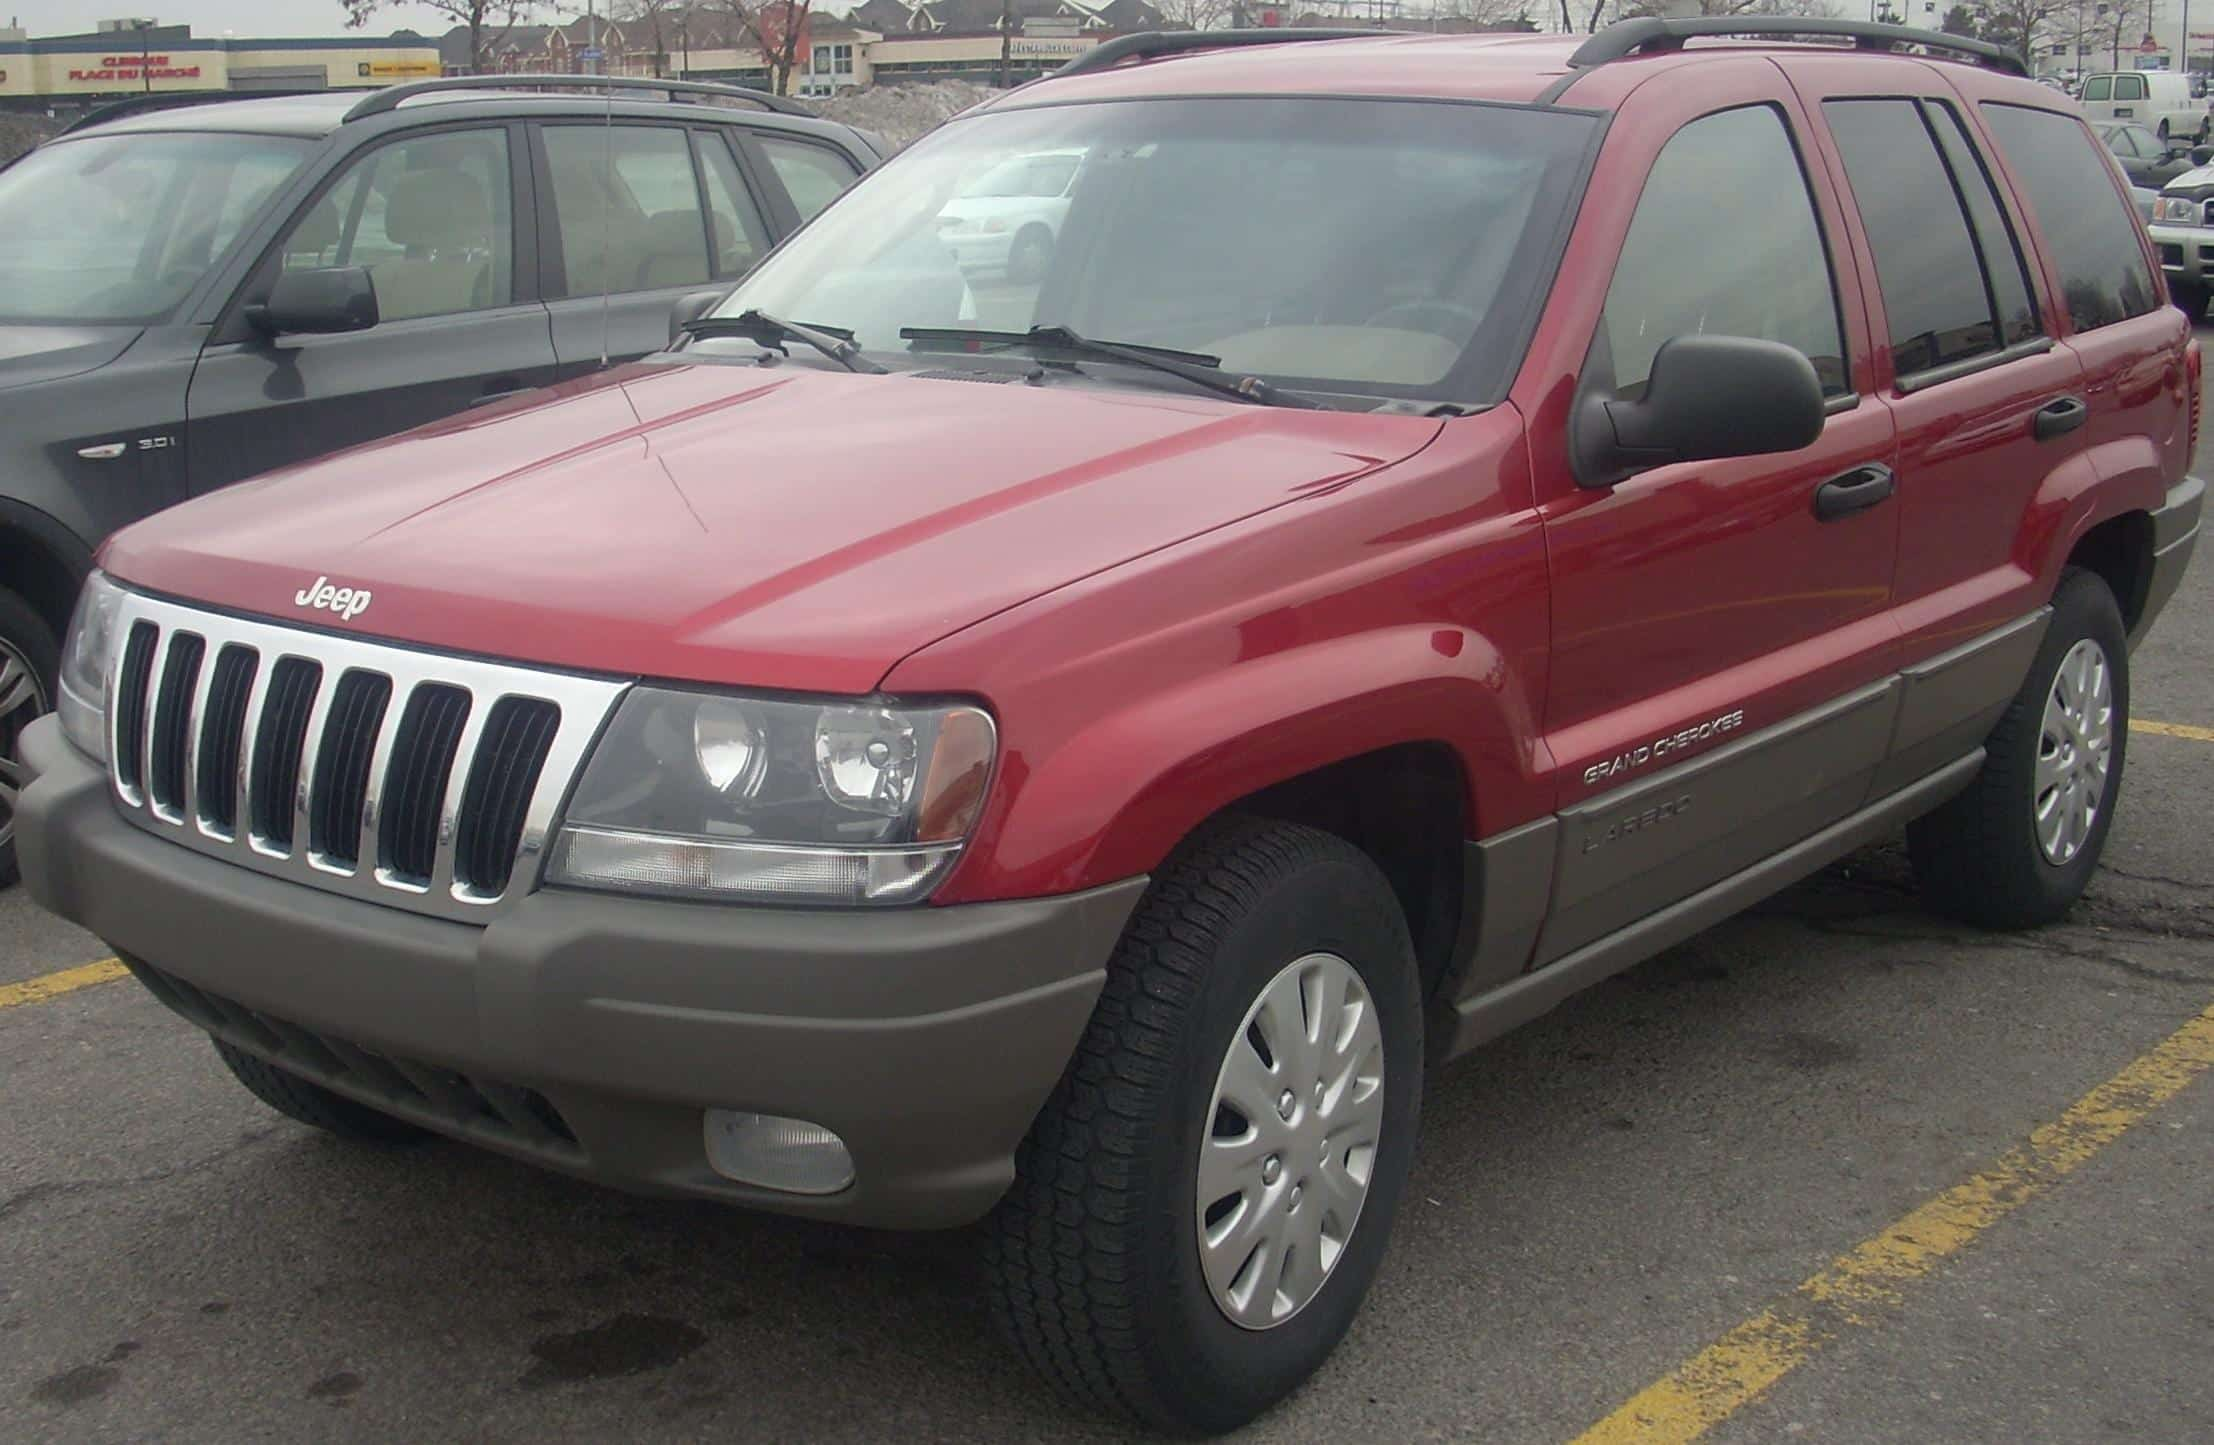 1999 - 2003 Jeep Grand Cherokee; photo by Bull-Doser (Own work), Public domain, via Wikimedia Commons.